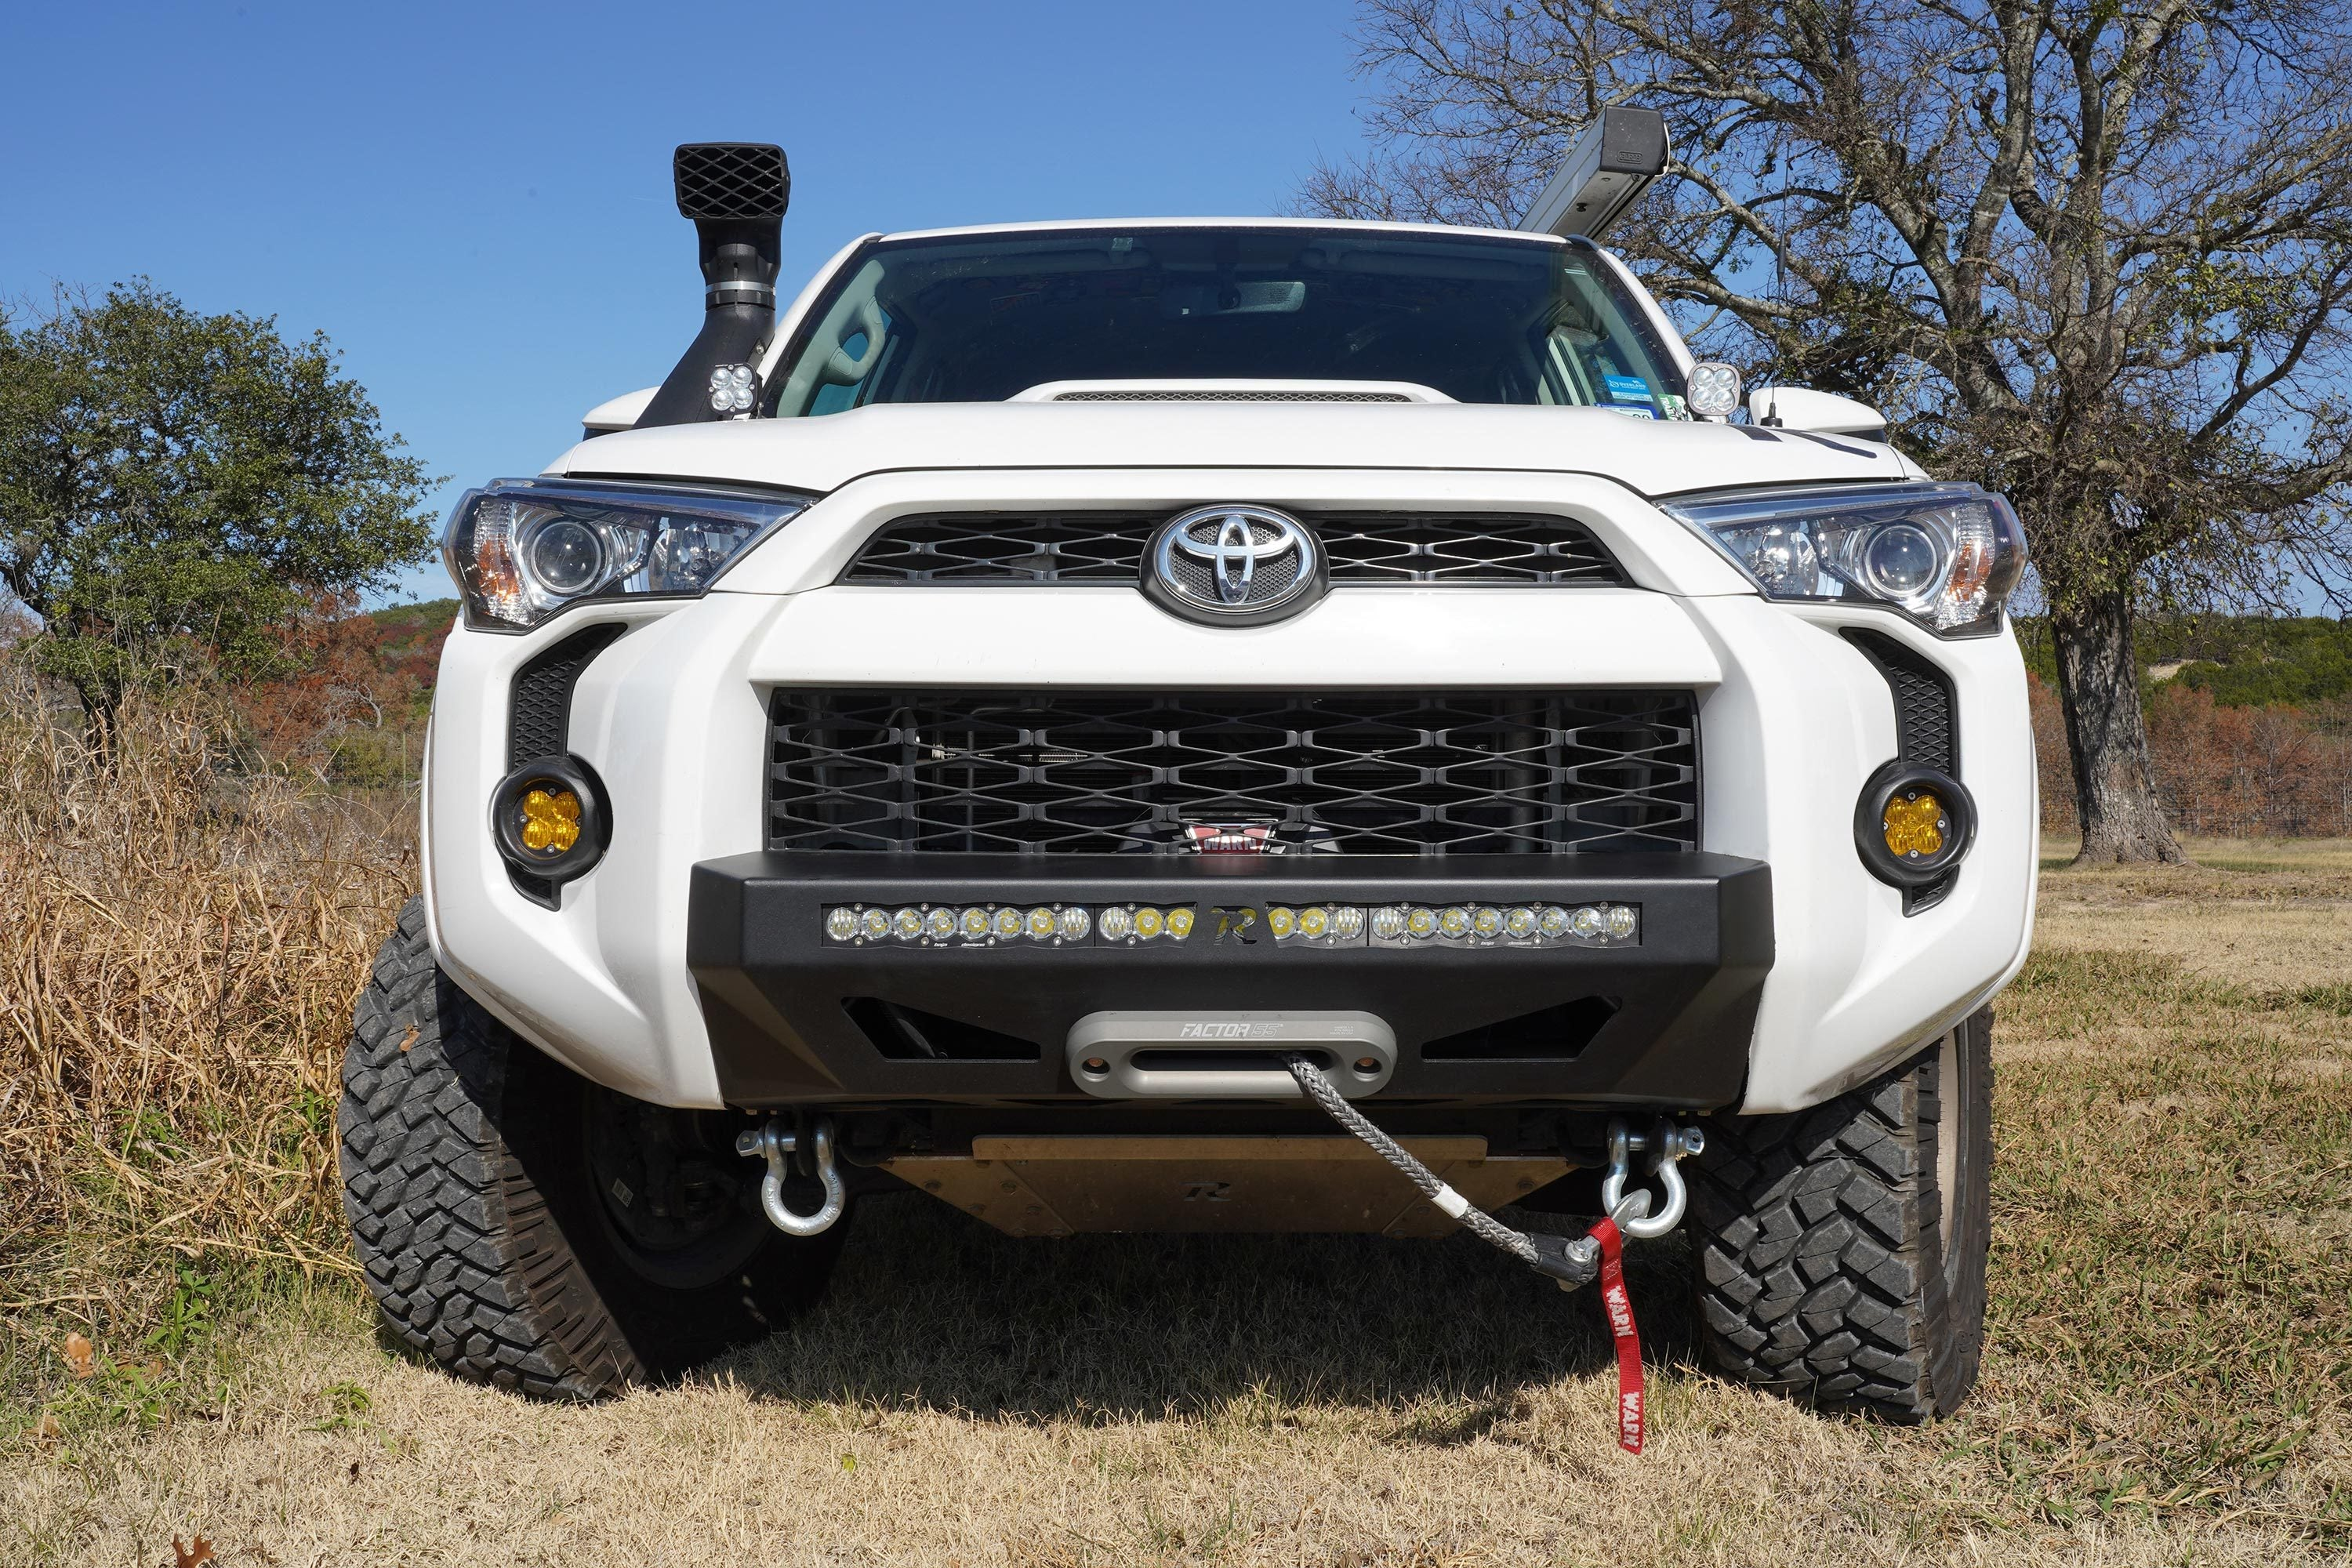 RAGO - LOW PROFILE  BUMPER - TOYOTA 5TH GEN 4RUNNER 2014-2020 - 4x4 Runners